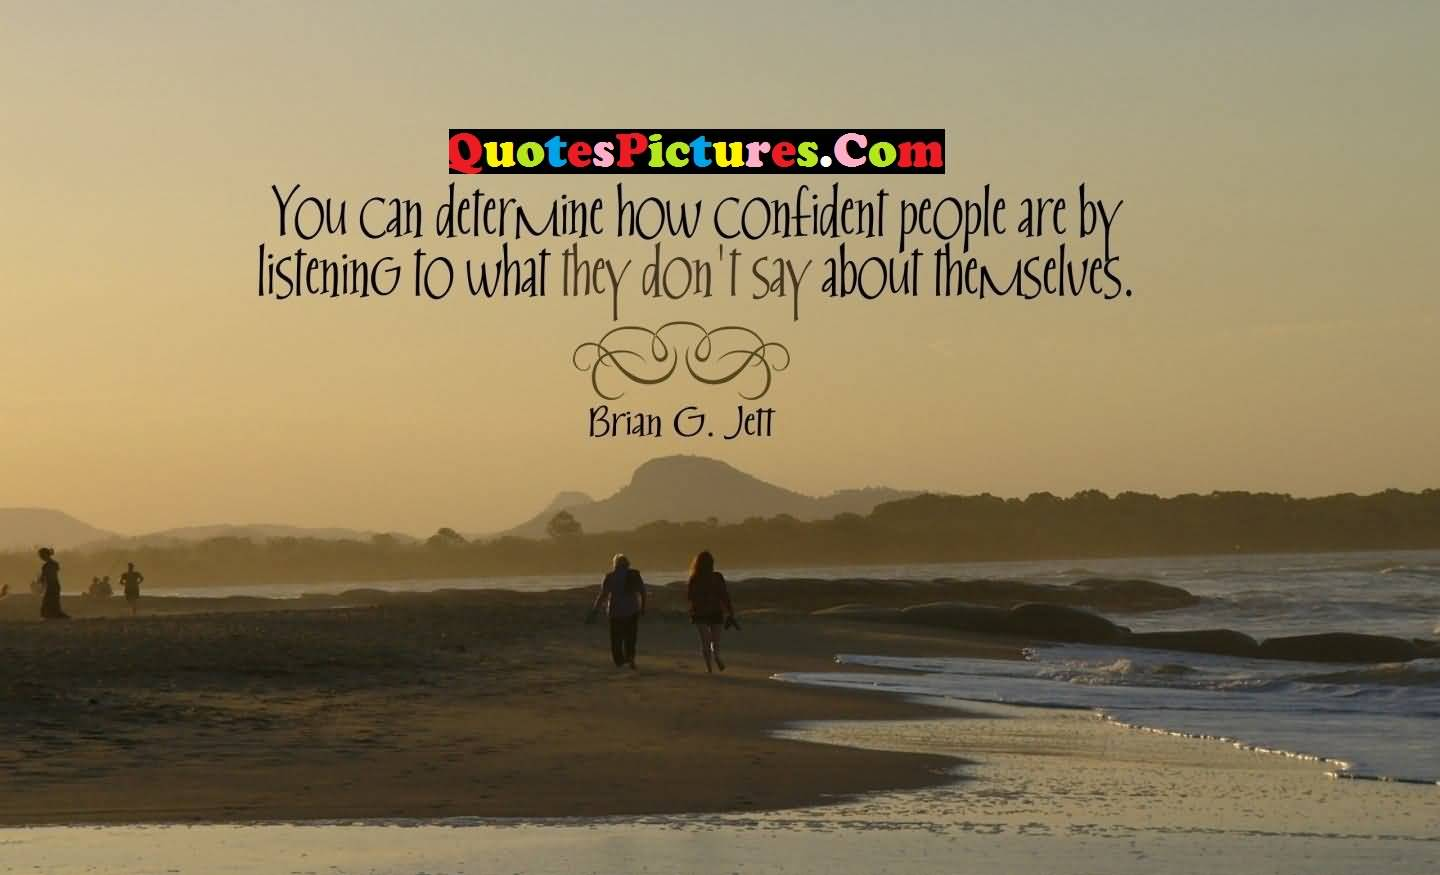 Fabulous Love Quote - You can Detremine How Confident People Are By Listening By Bran G.Jett